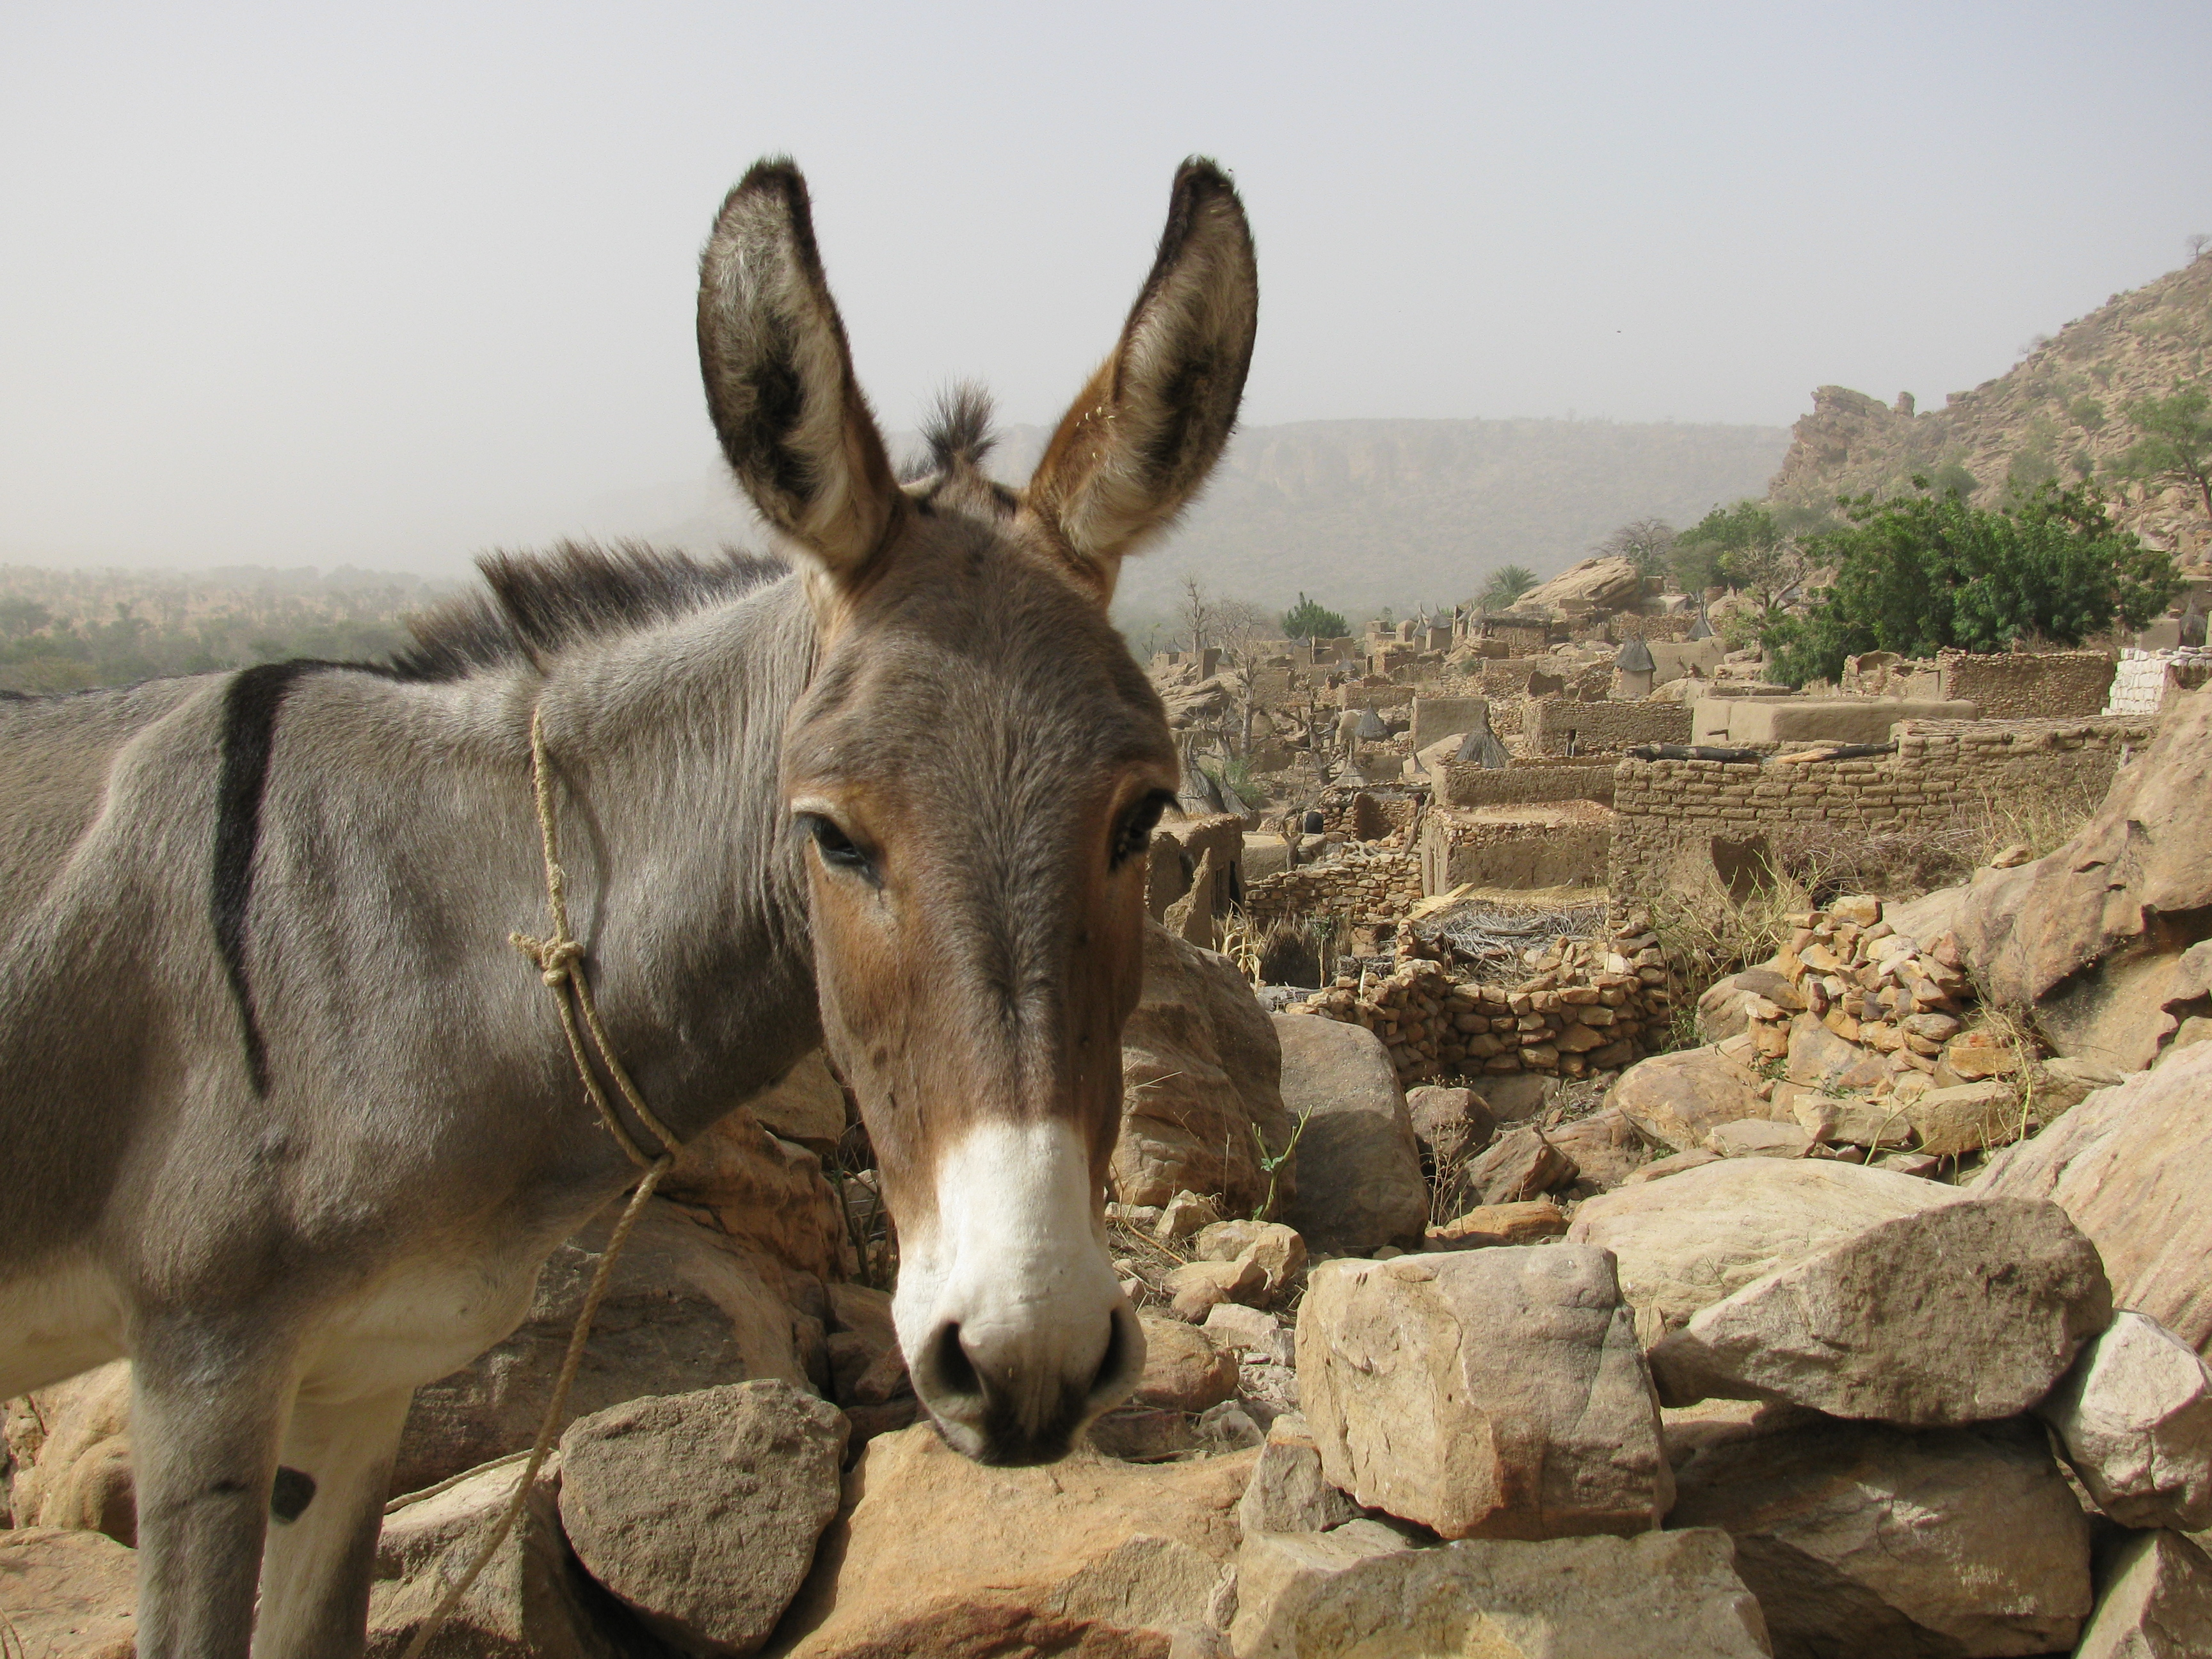 donkey One of the world's largest video sites, serving the best videos, funniest movies and clips.